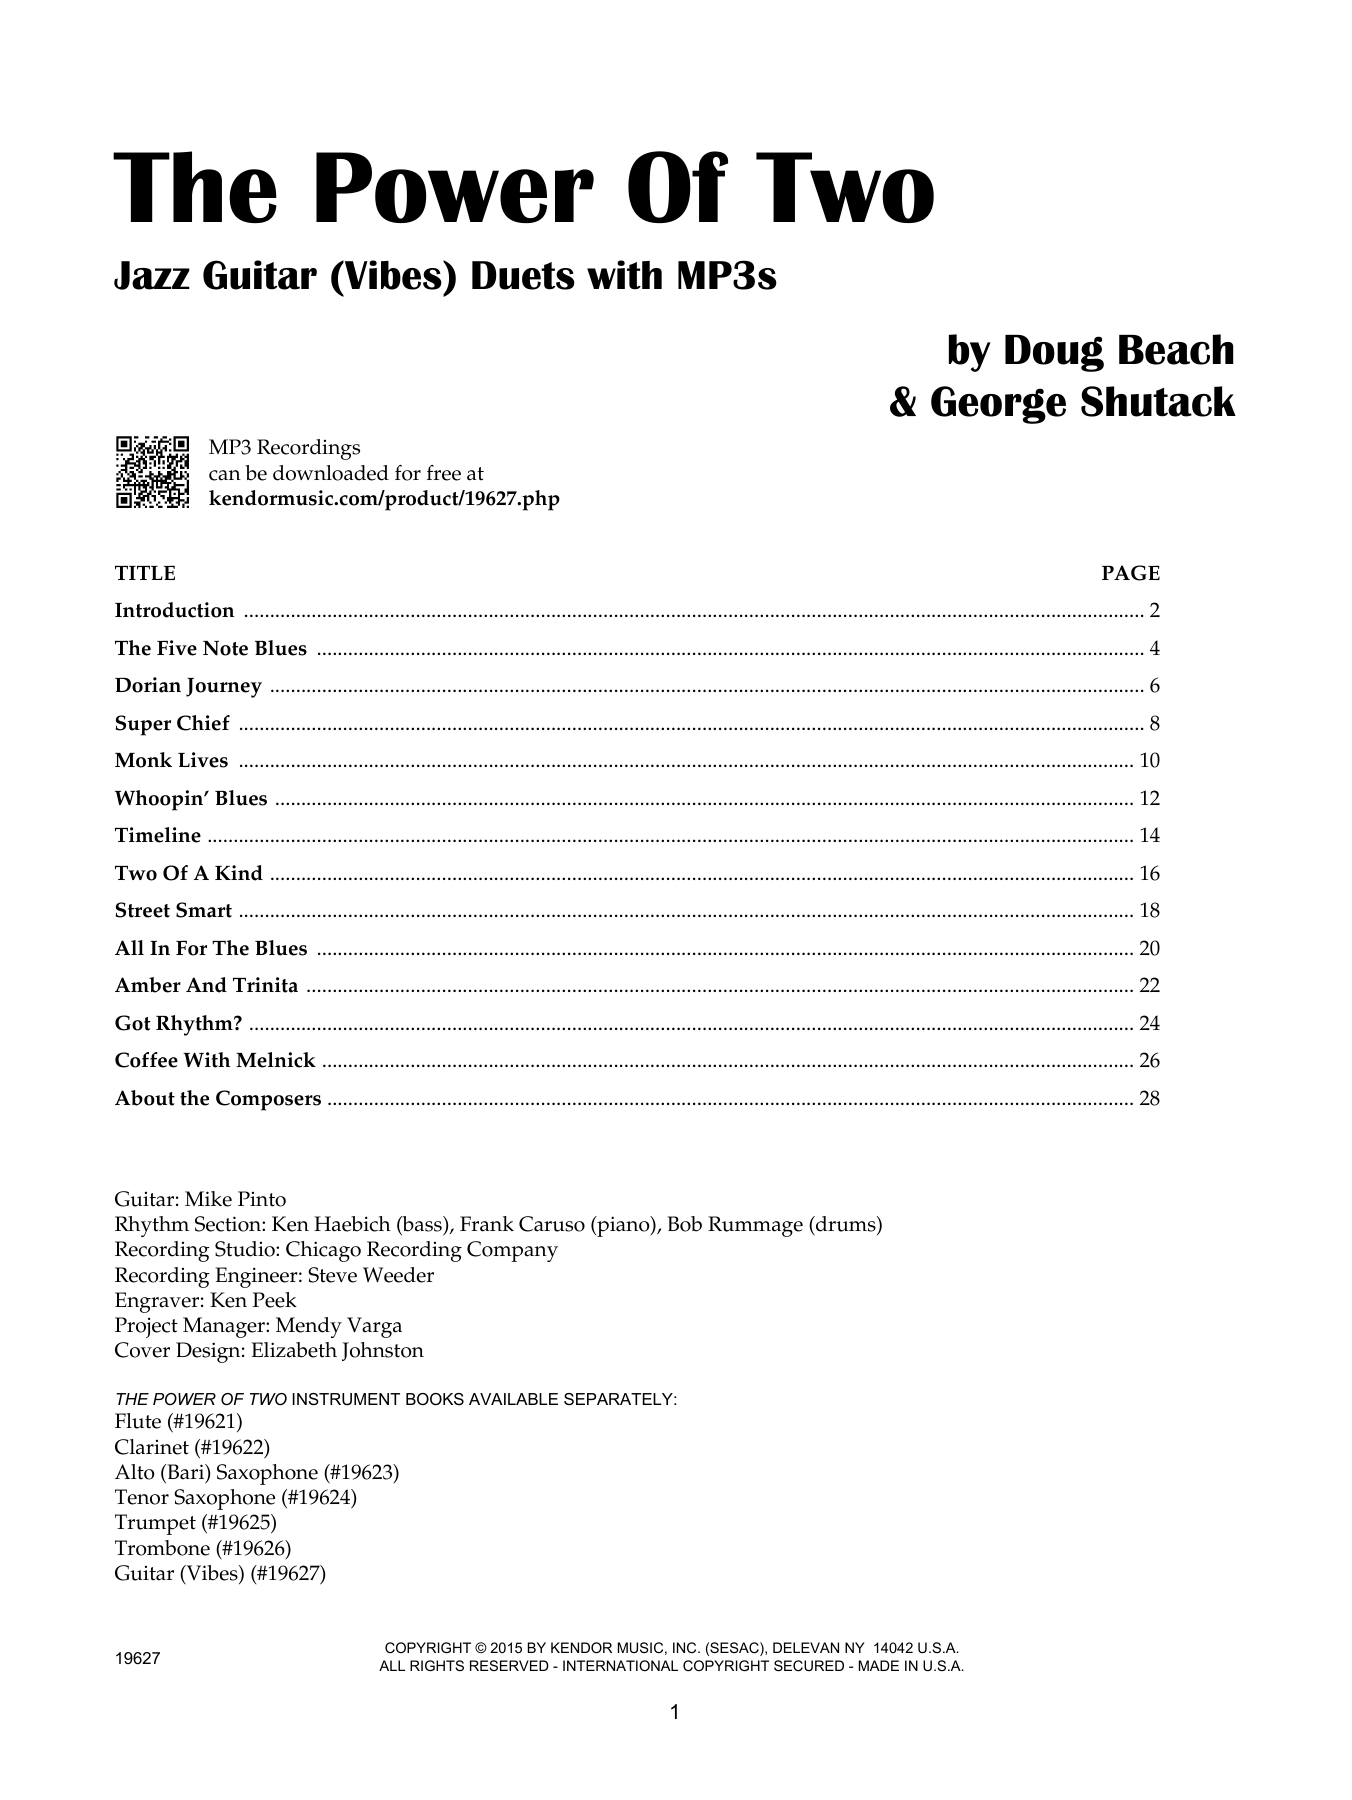 Doug Beach The Power Of Two - Guitar (Vibes) sheet music notes and chords